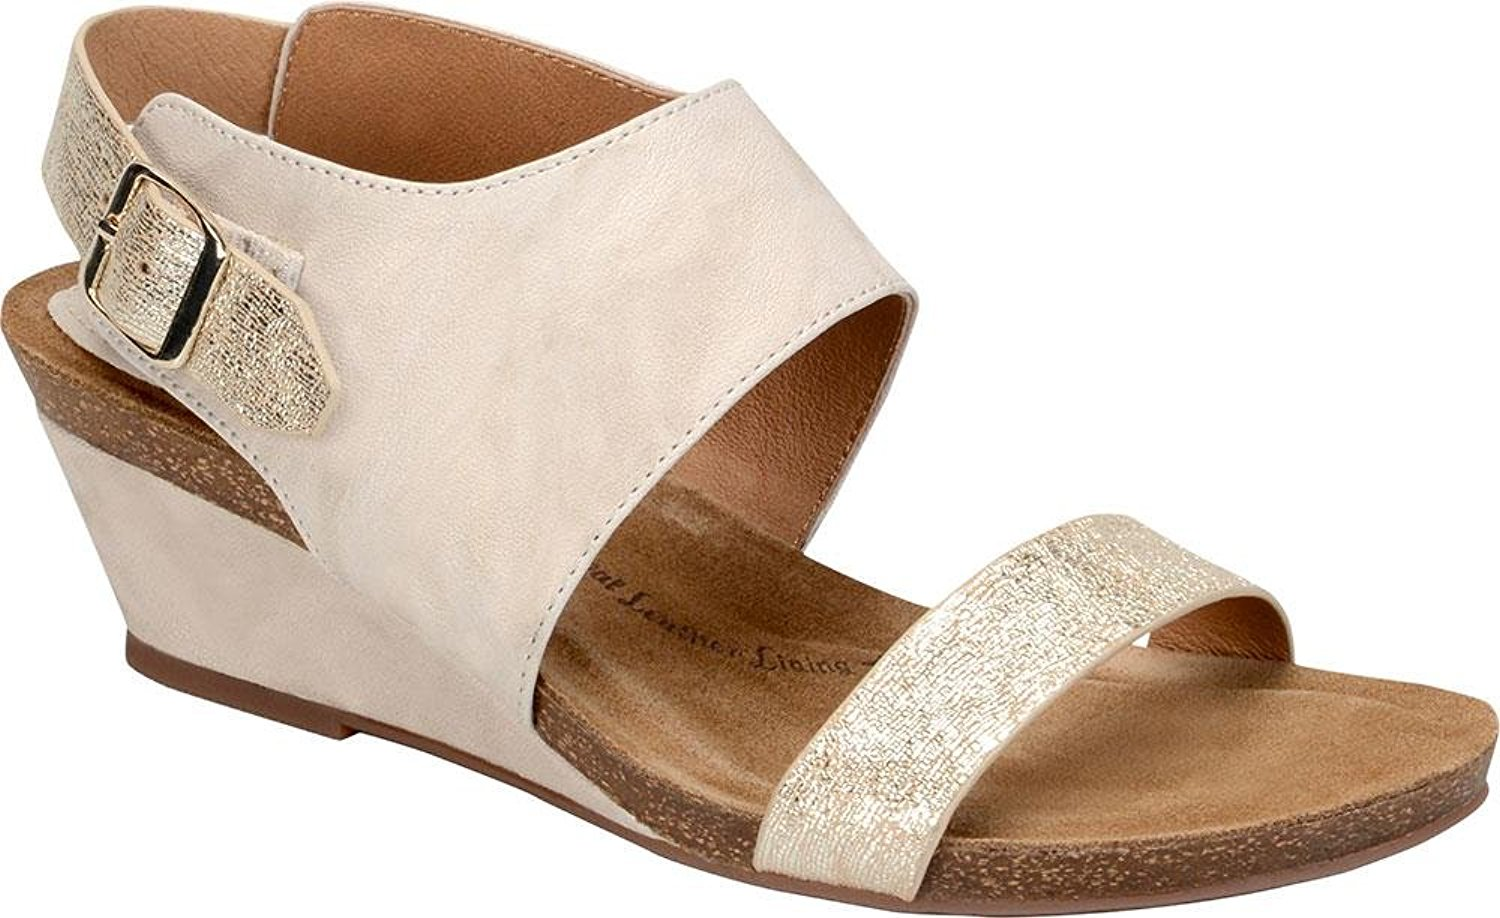 Sofft Womens Vanita Leather Open Toe Casual Slingback Sandals by Sofft